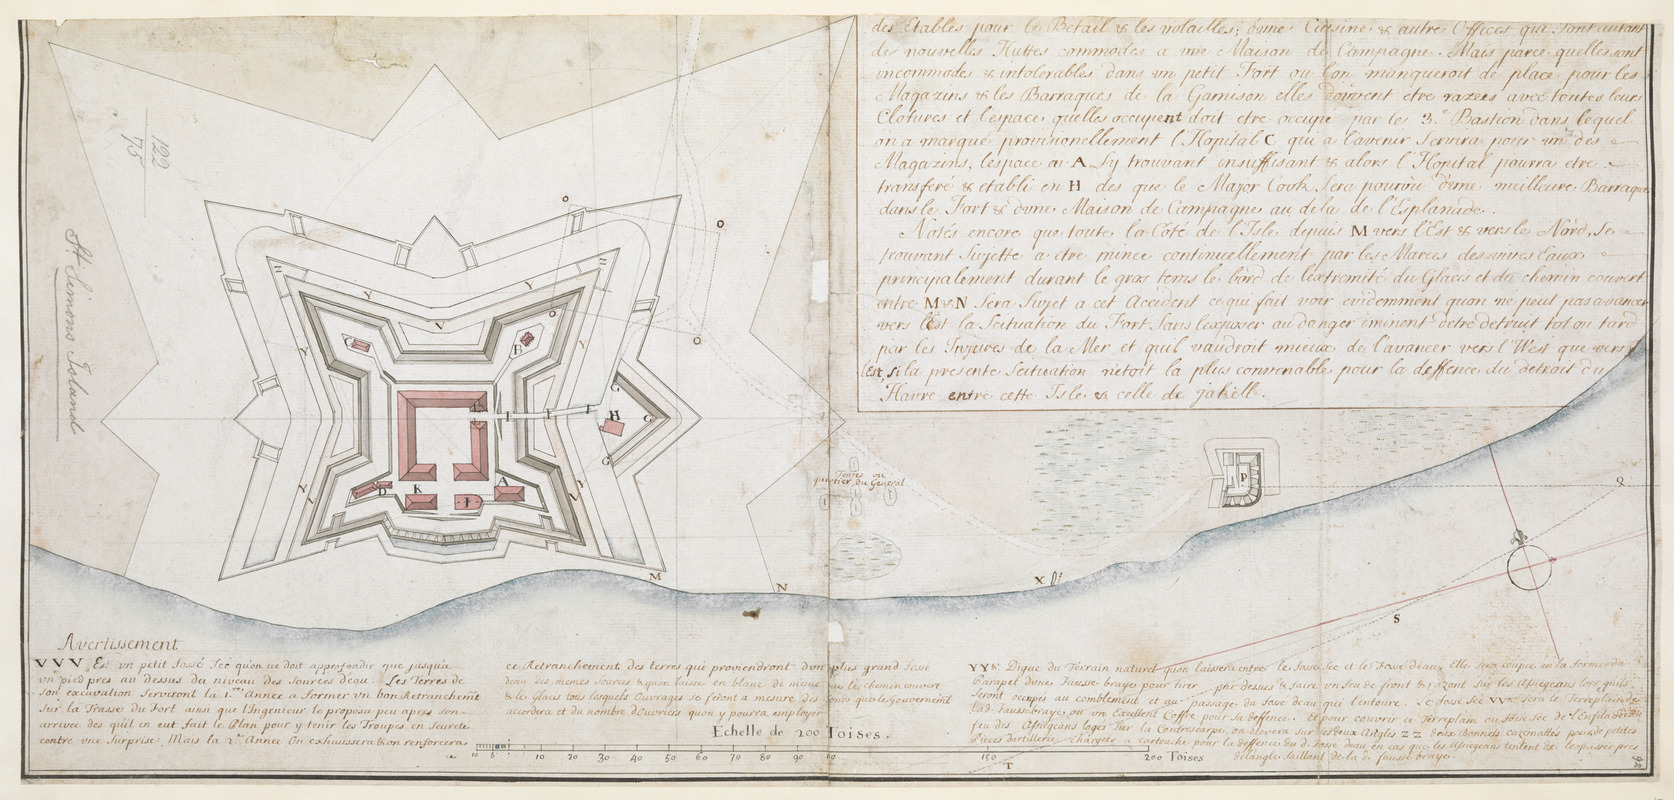 [Map of the proposed fort and adjacent redoubt on Saint Simons Island]